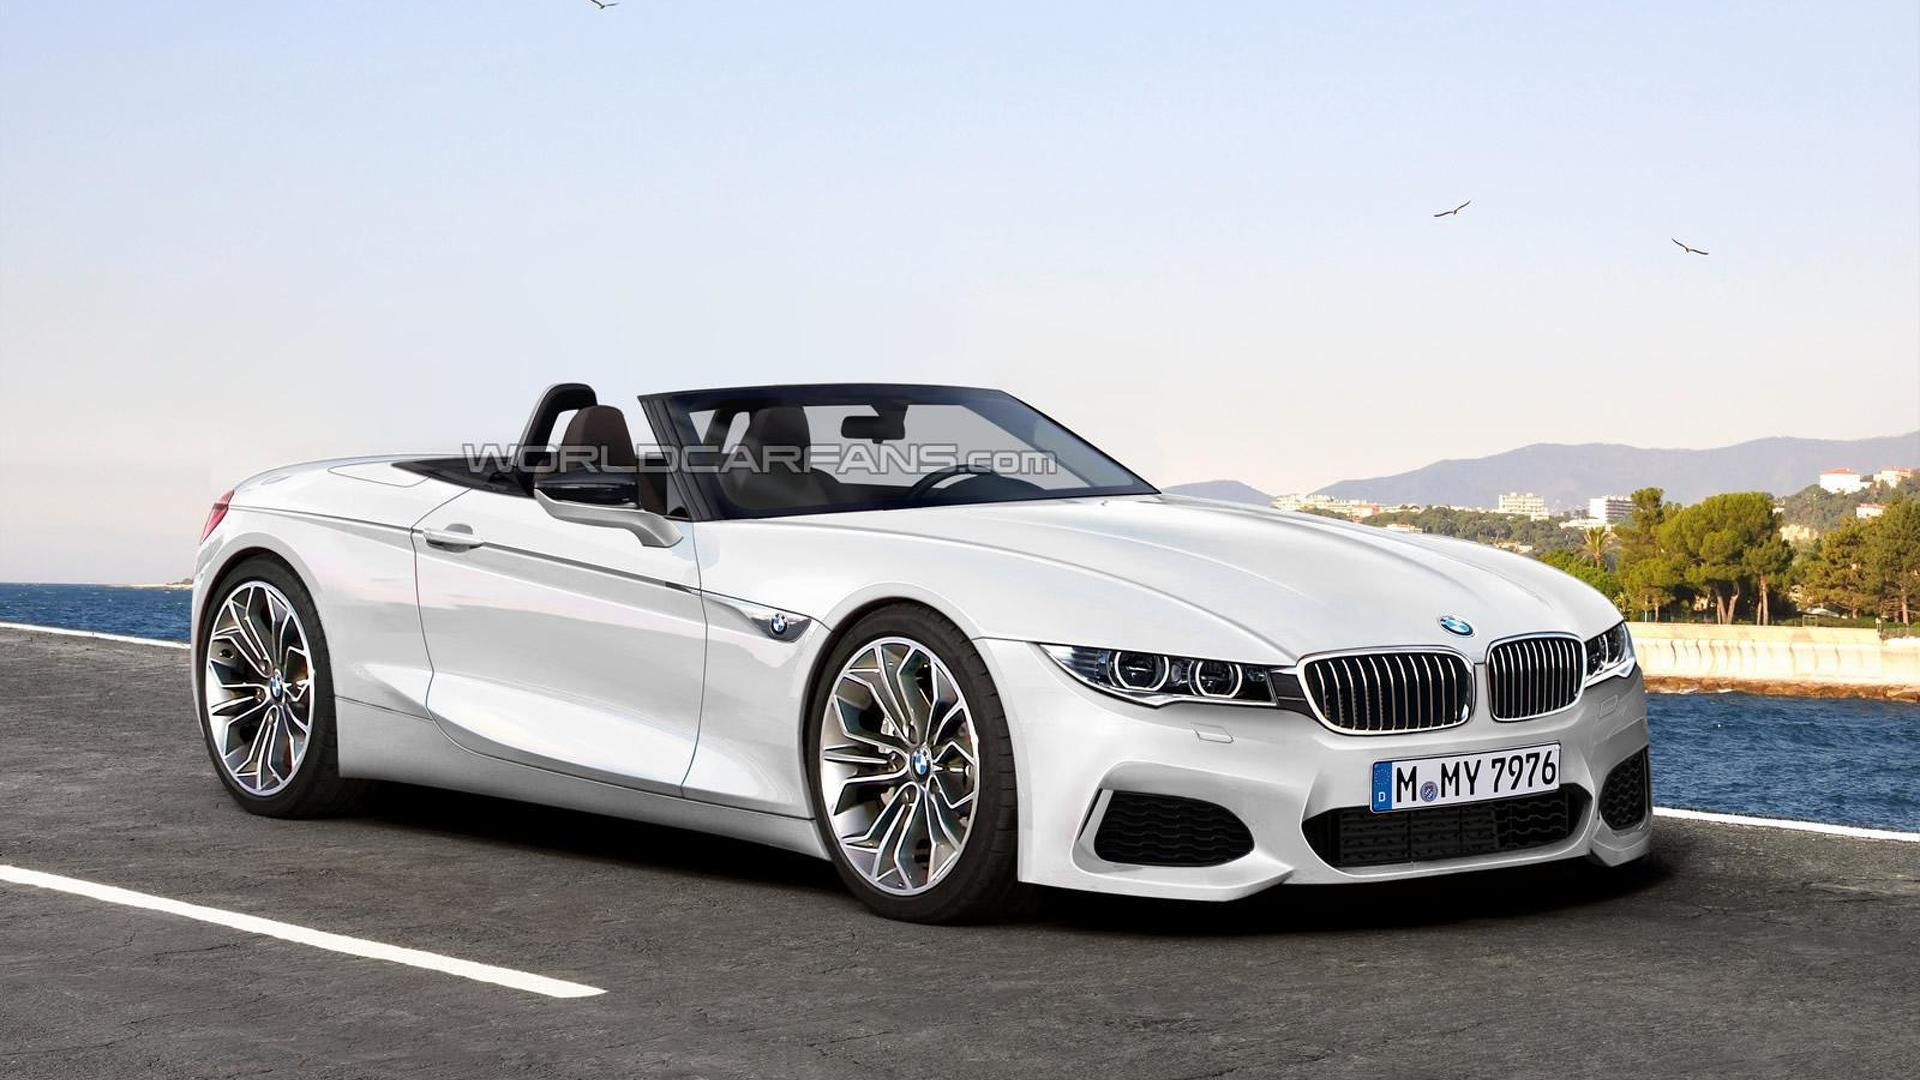 BMW Z5 digitally imagined